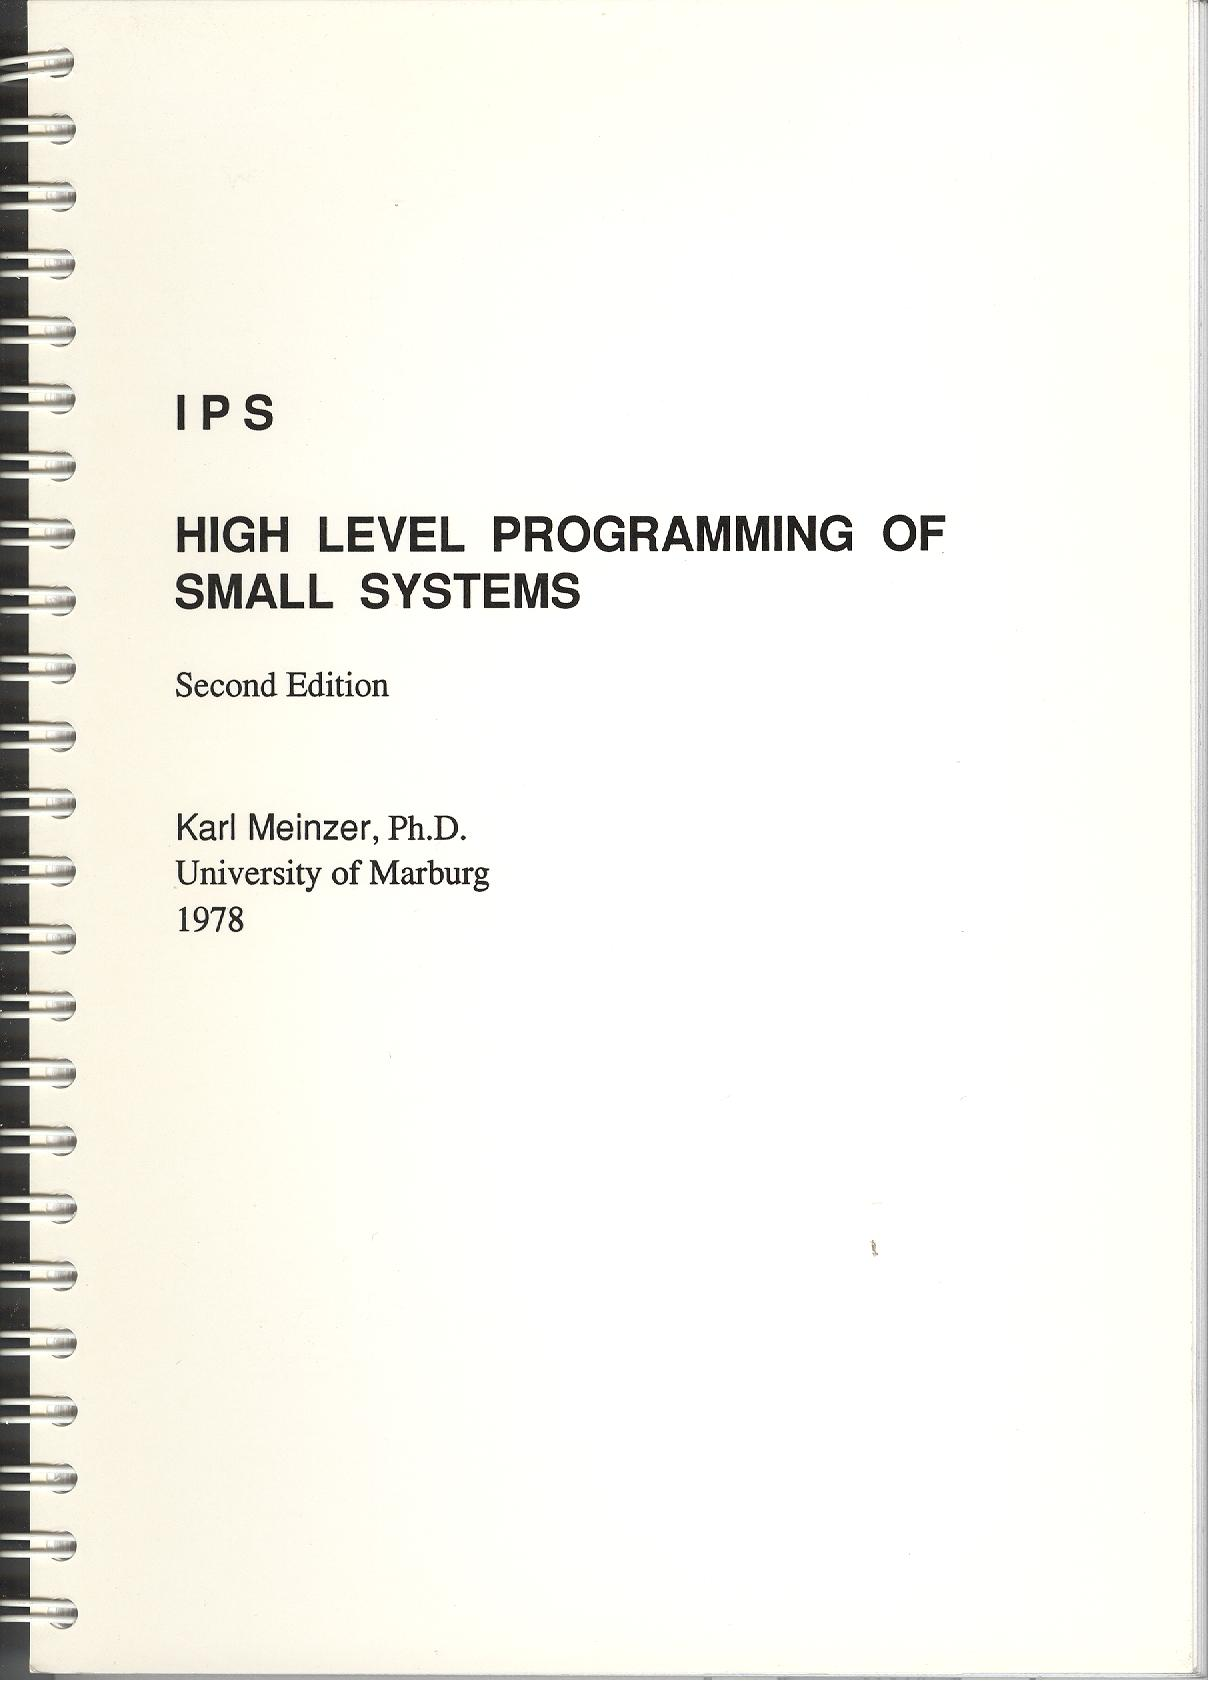 IPS High Level Programming of Small Systems